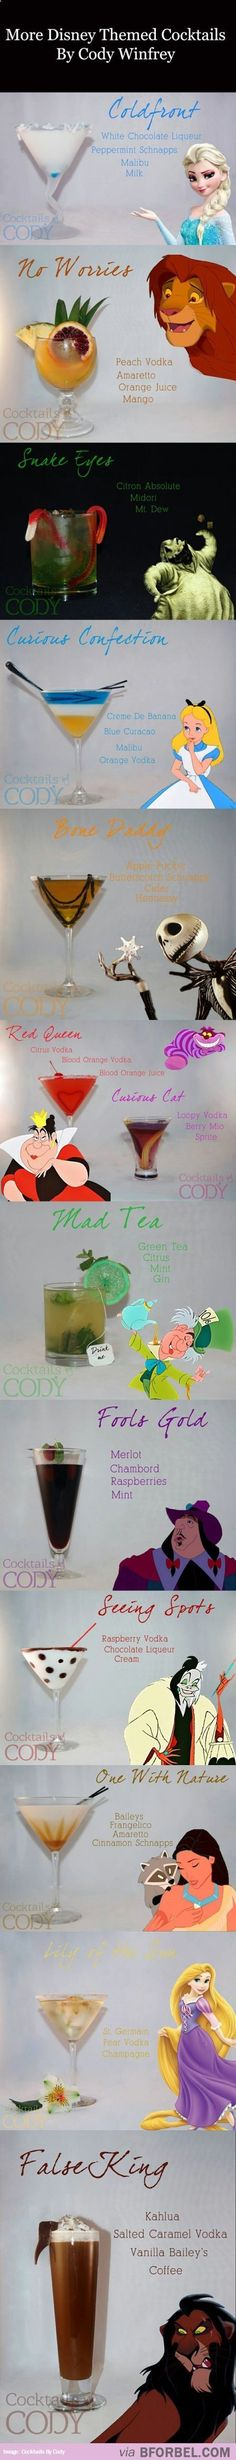 12 More Disney-Themed Cocktails